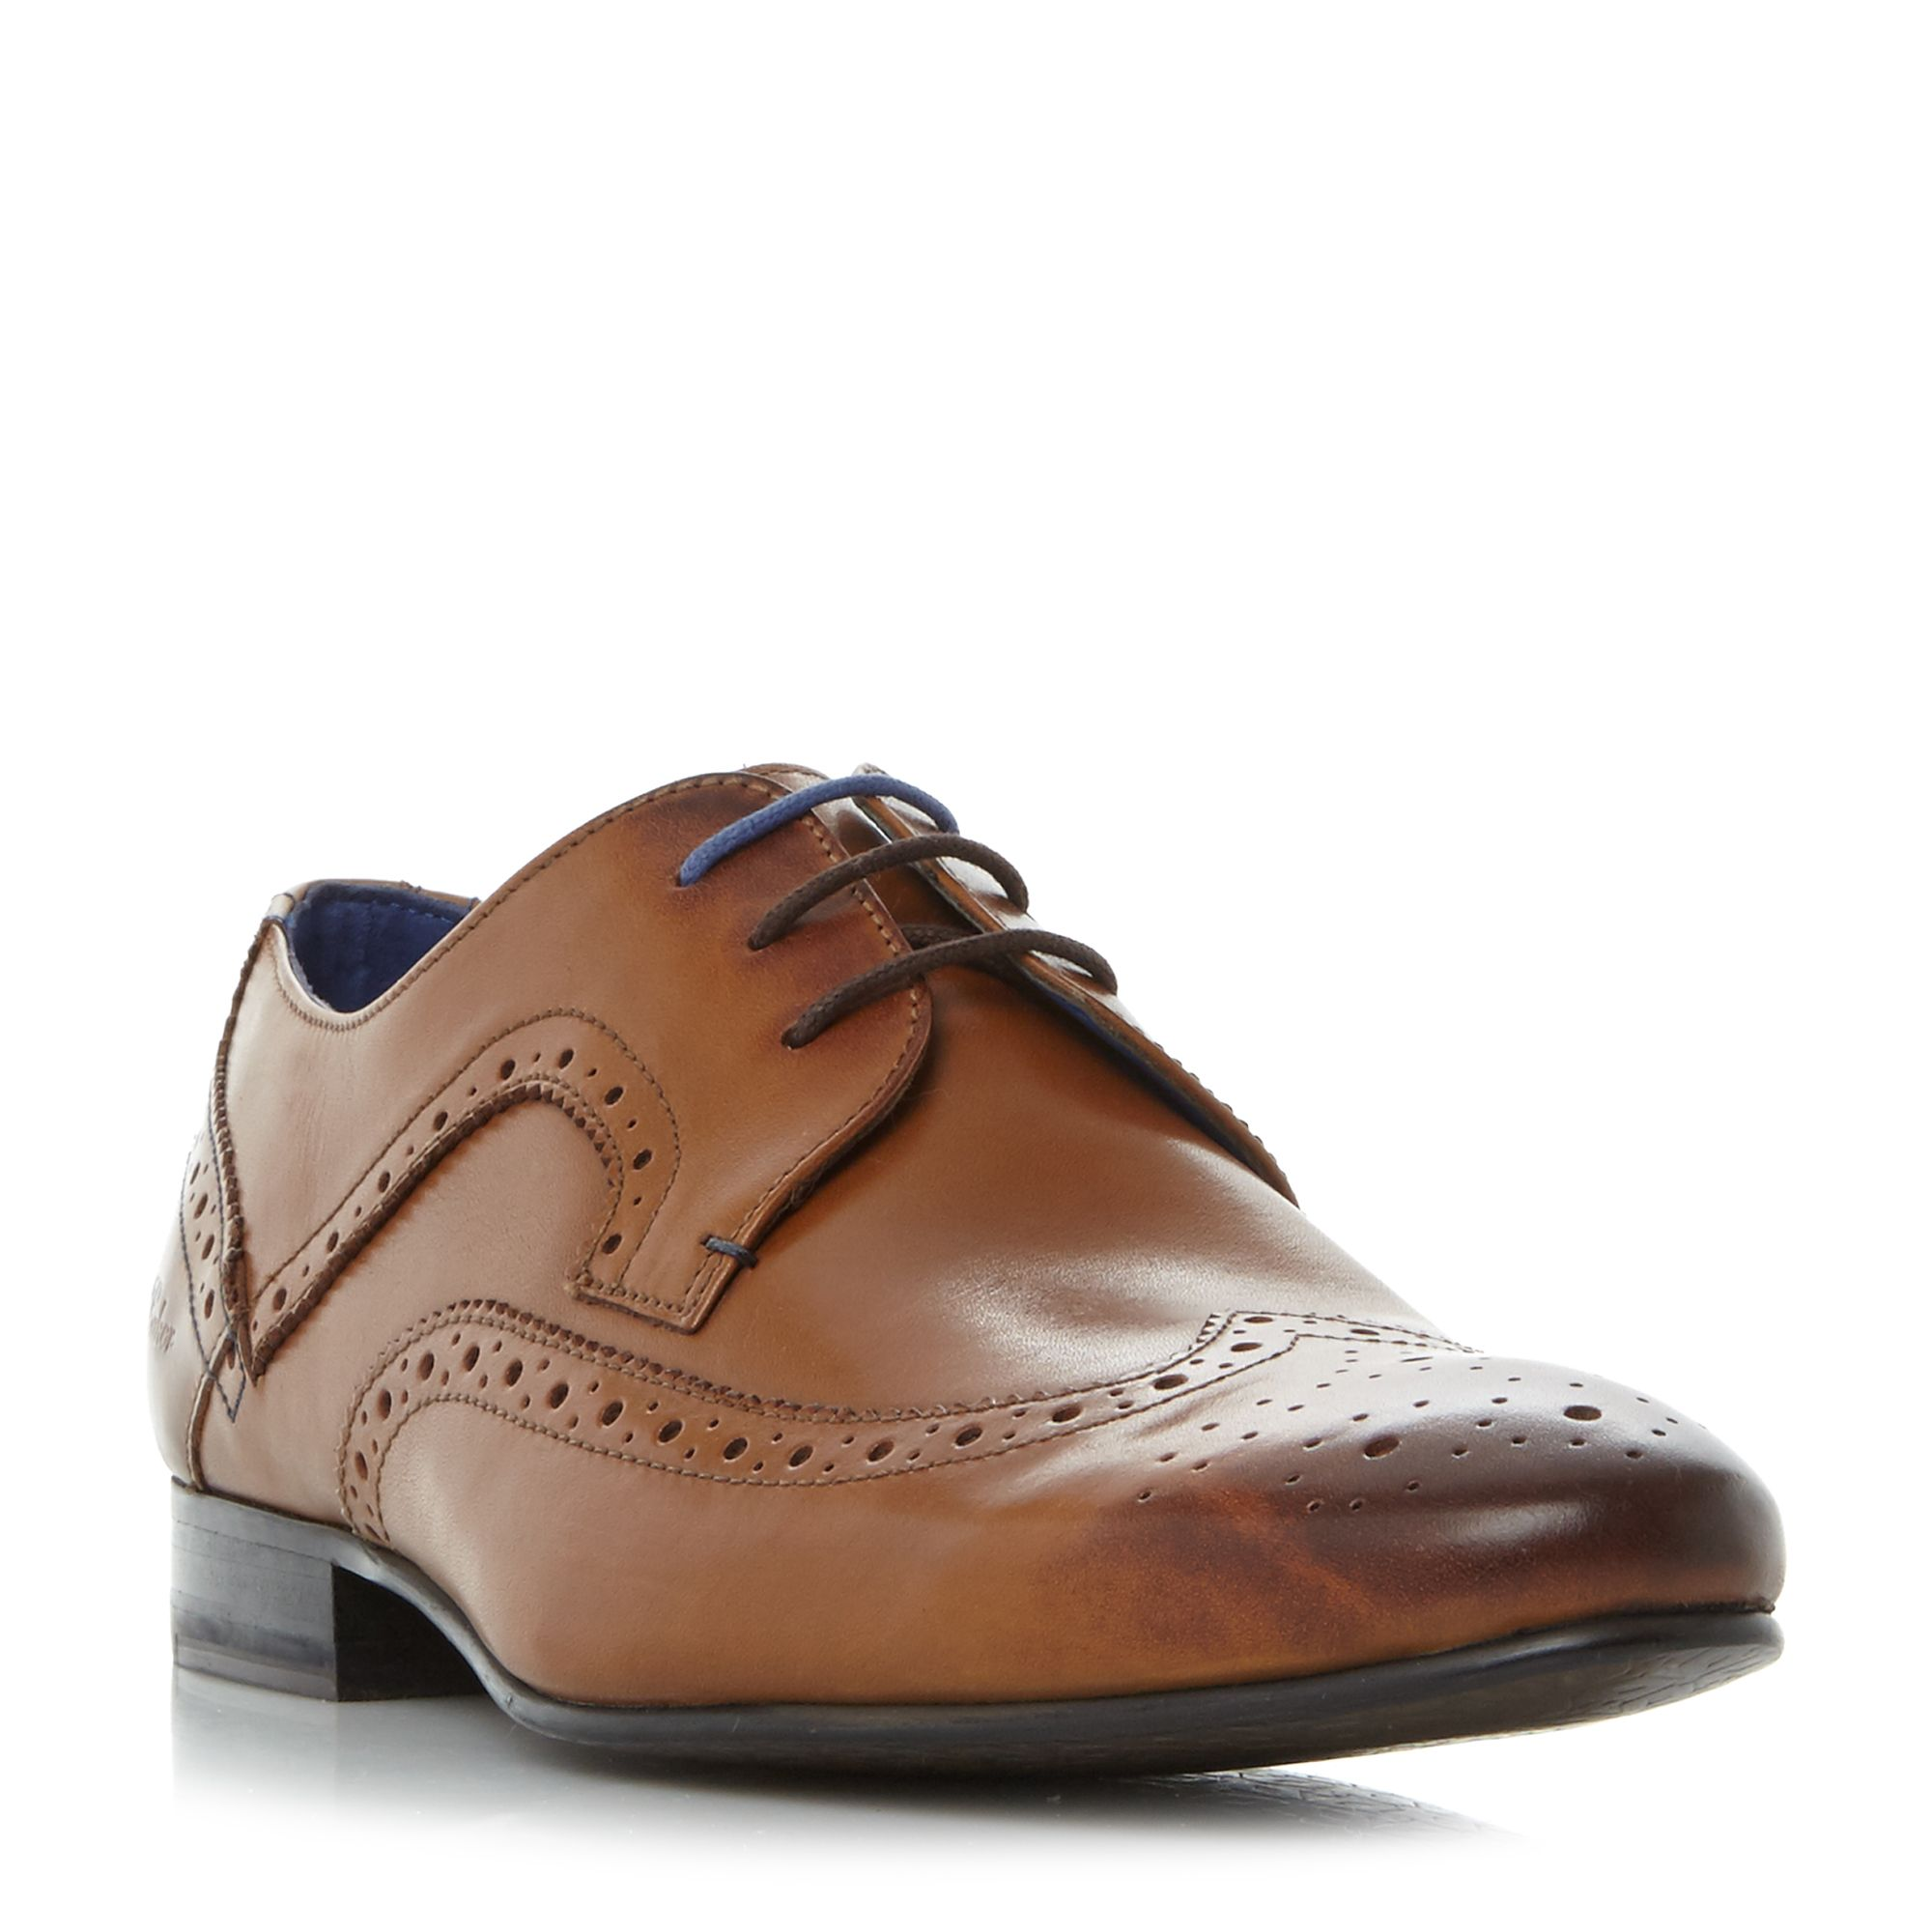 Ted Baker Oakke Wingtip Brogue Lace Up Shoes Tan